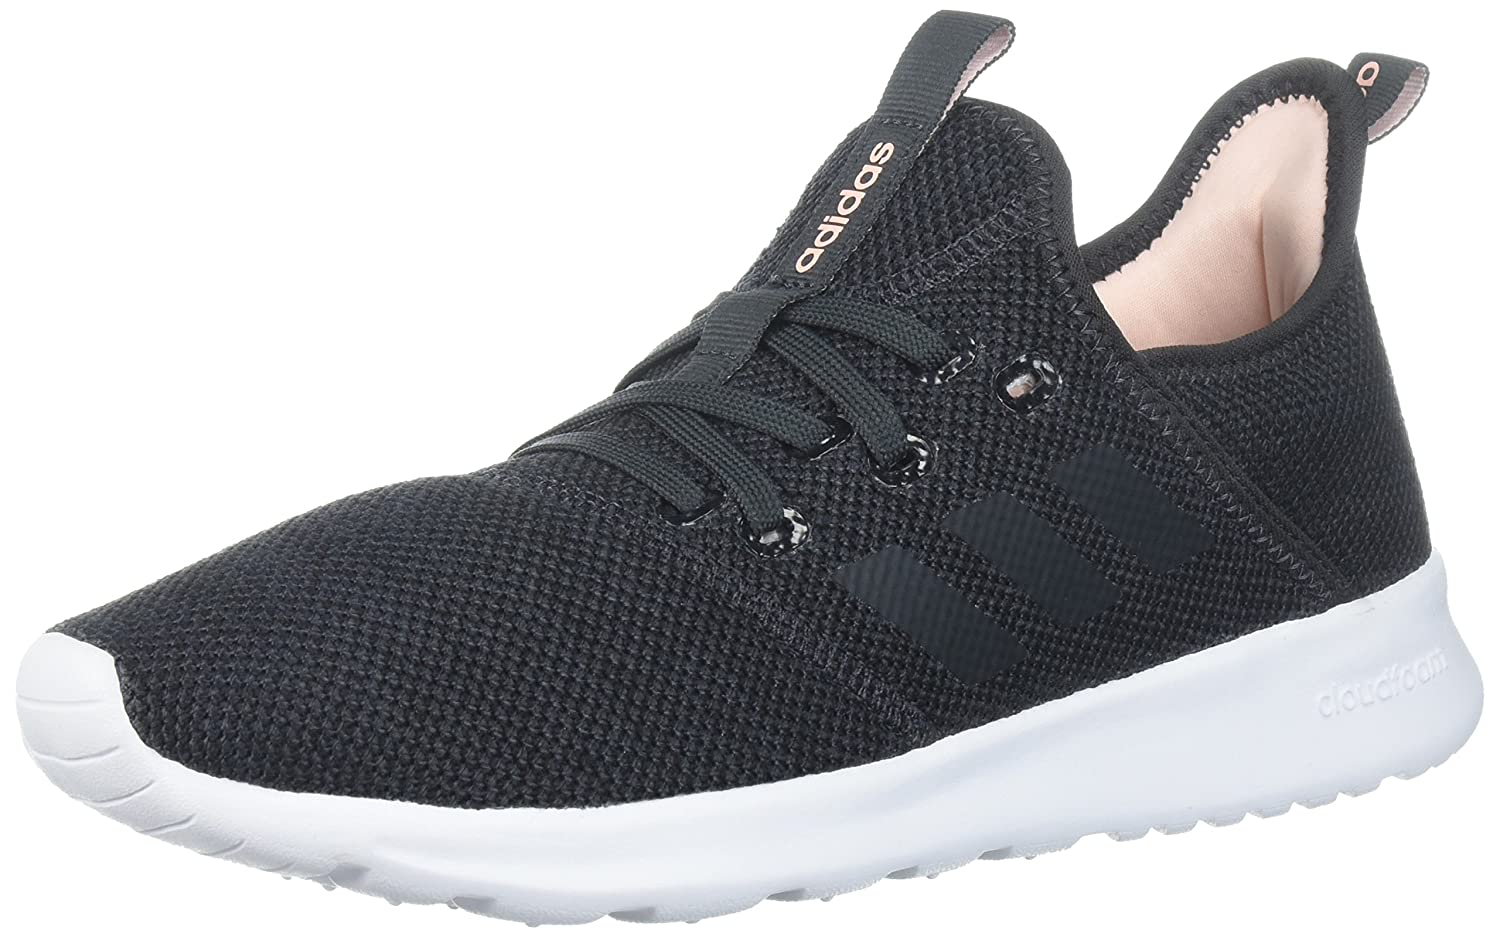 adidas Women's Cloudfoam Pure Running Shoe B0719HX825 9 B(M) US|Carbon/Carbon